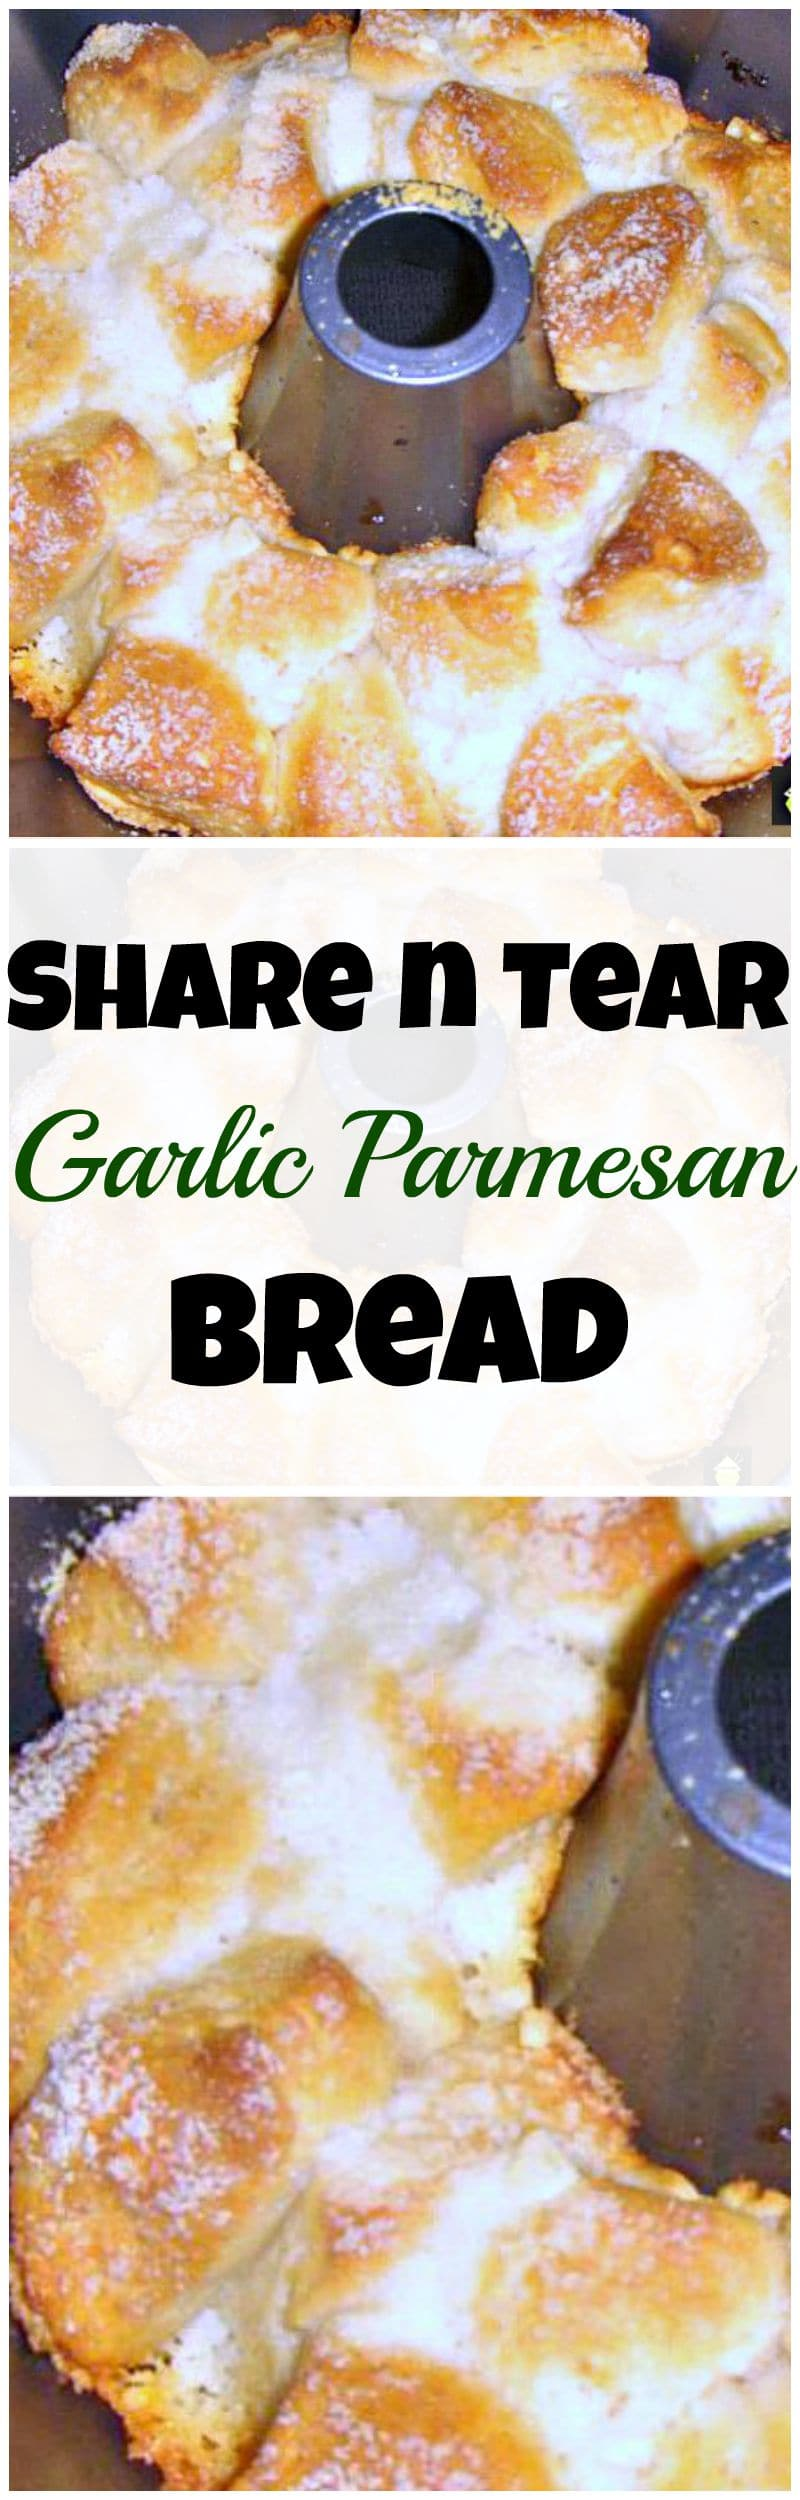 Easy tear and share bread recipe